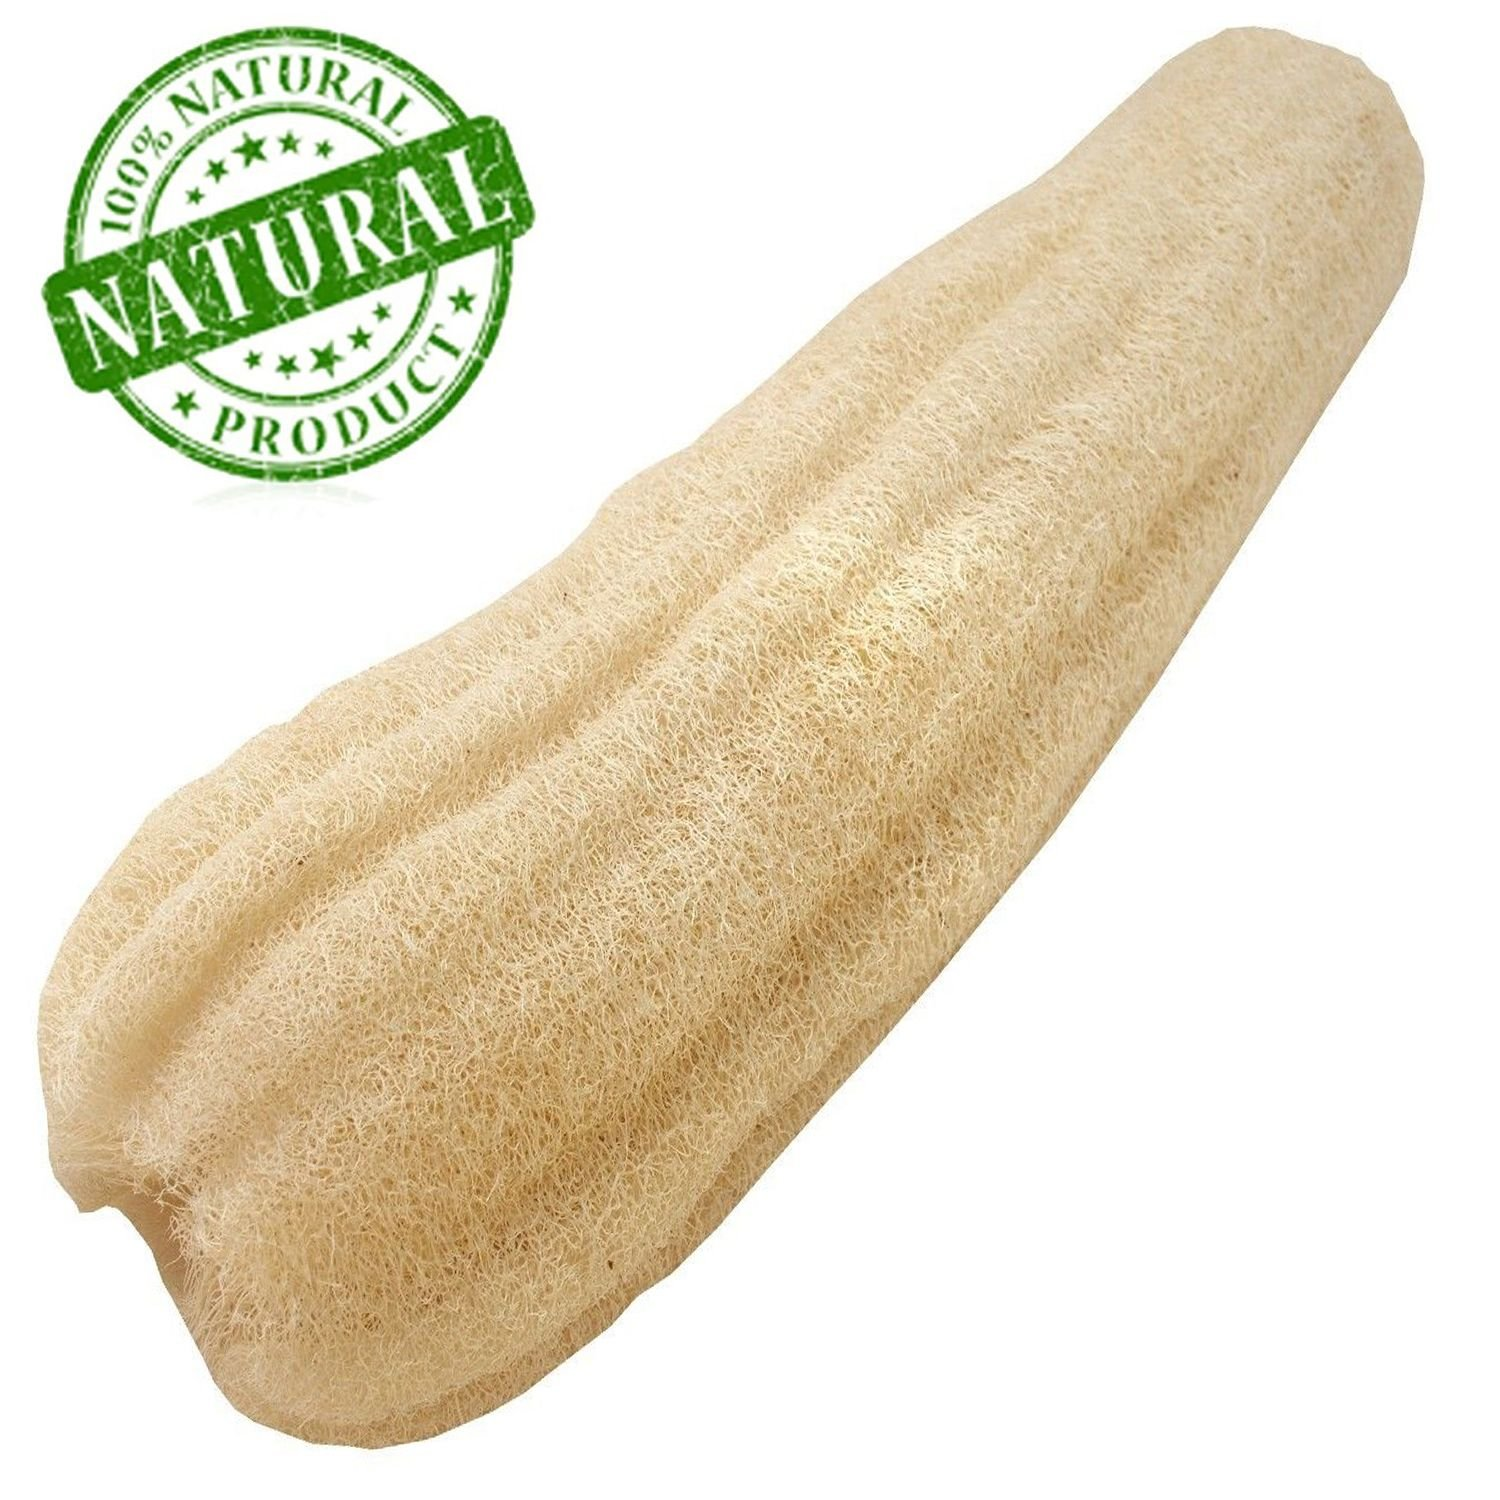 One Whole Large Natural Loofah 23.6 x 2.4 Inch, ZUEXT Organic Loofa Bath Sponge, SPA Beauty Luffa Scrubber Sponge, LOOFAH LOFA LOOFA Exfoliation Face Back Body Foot Scrubber